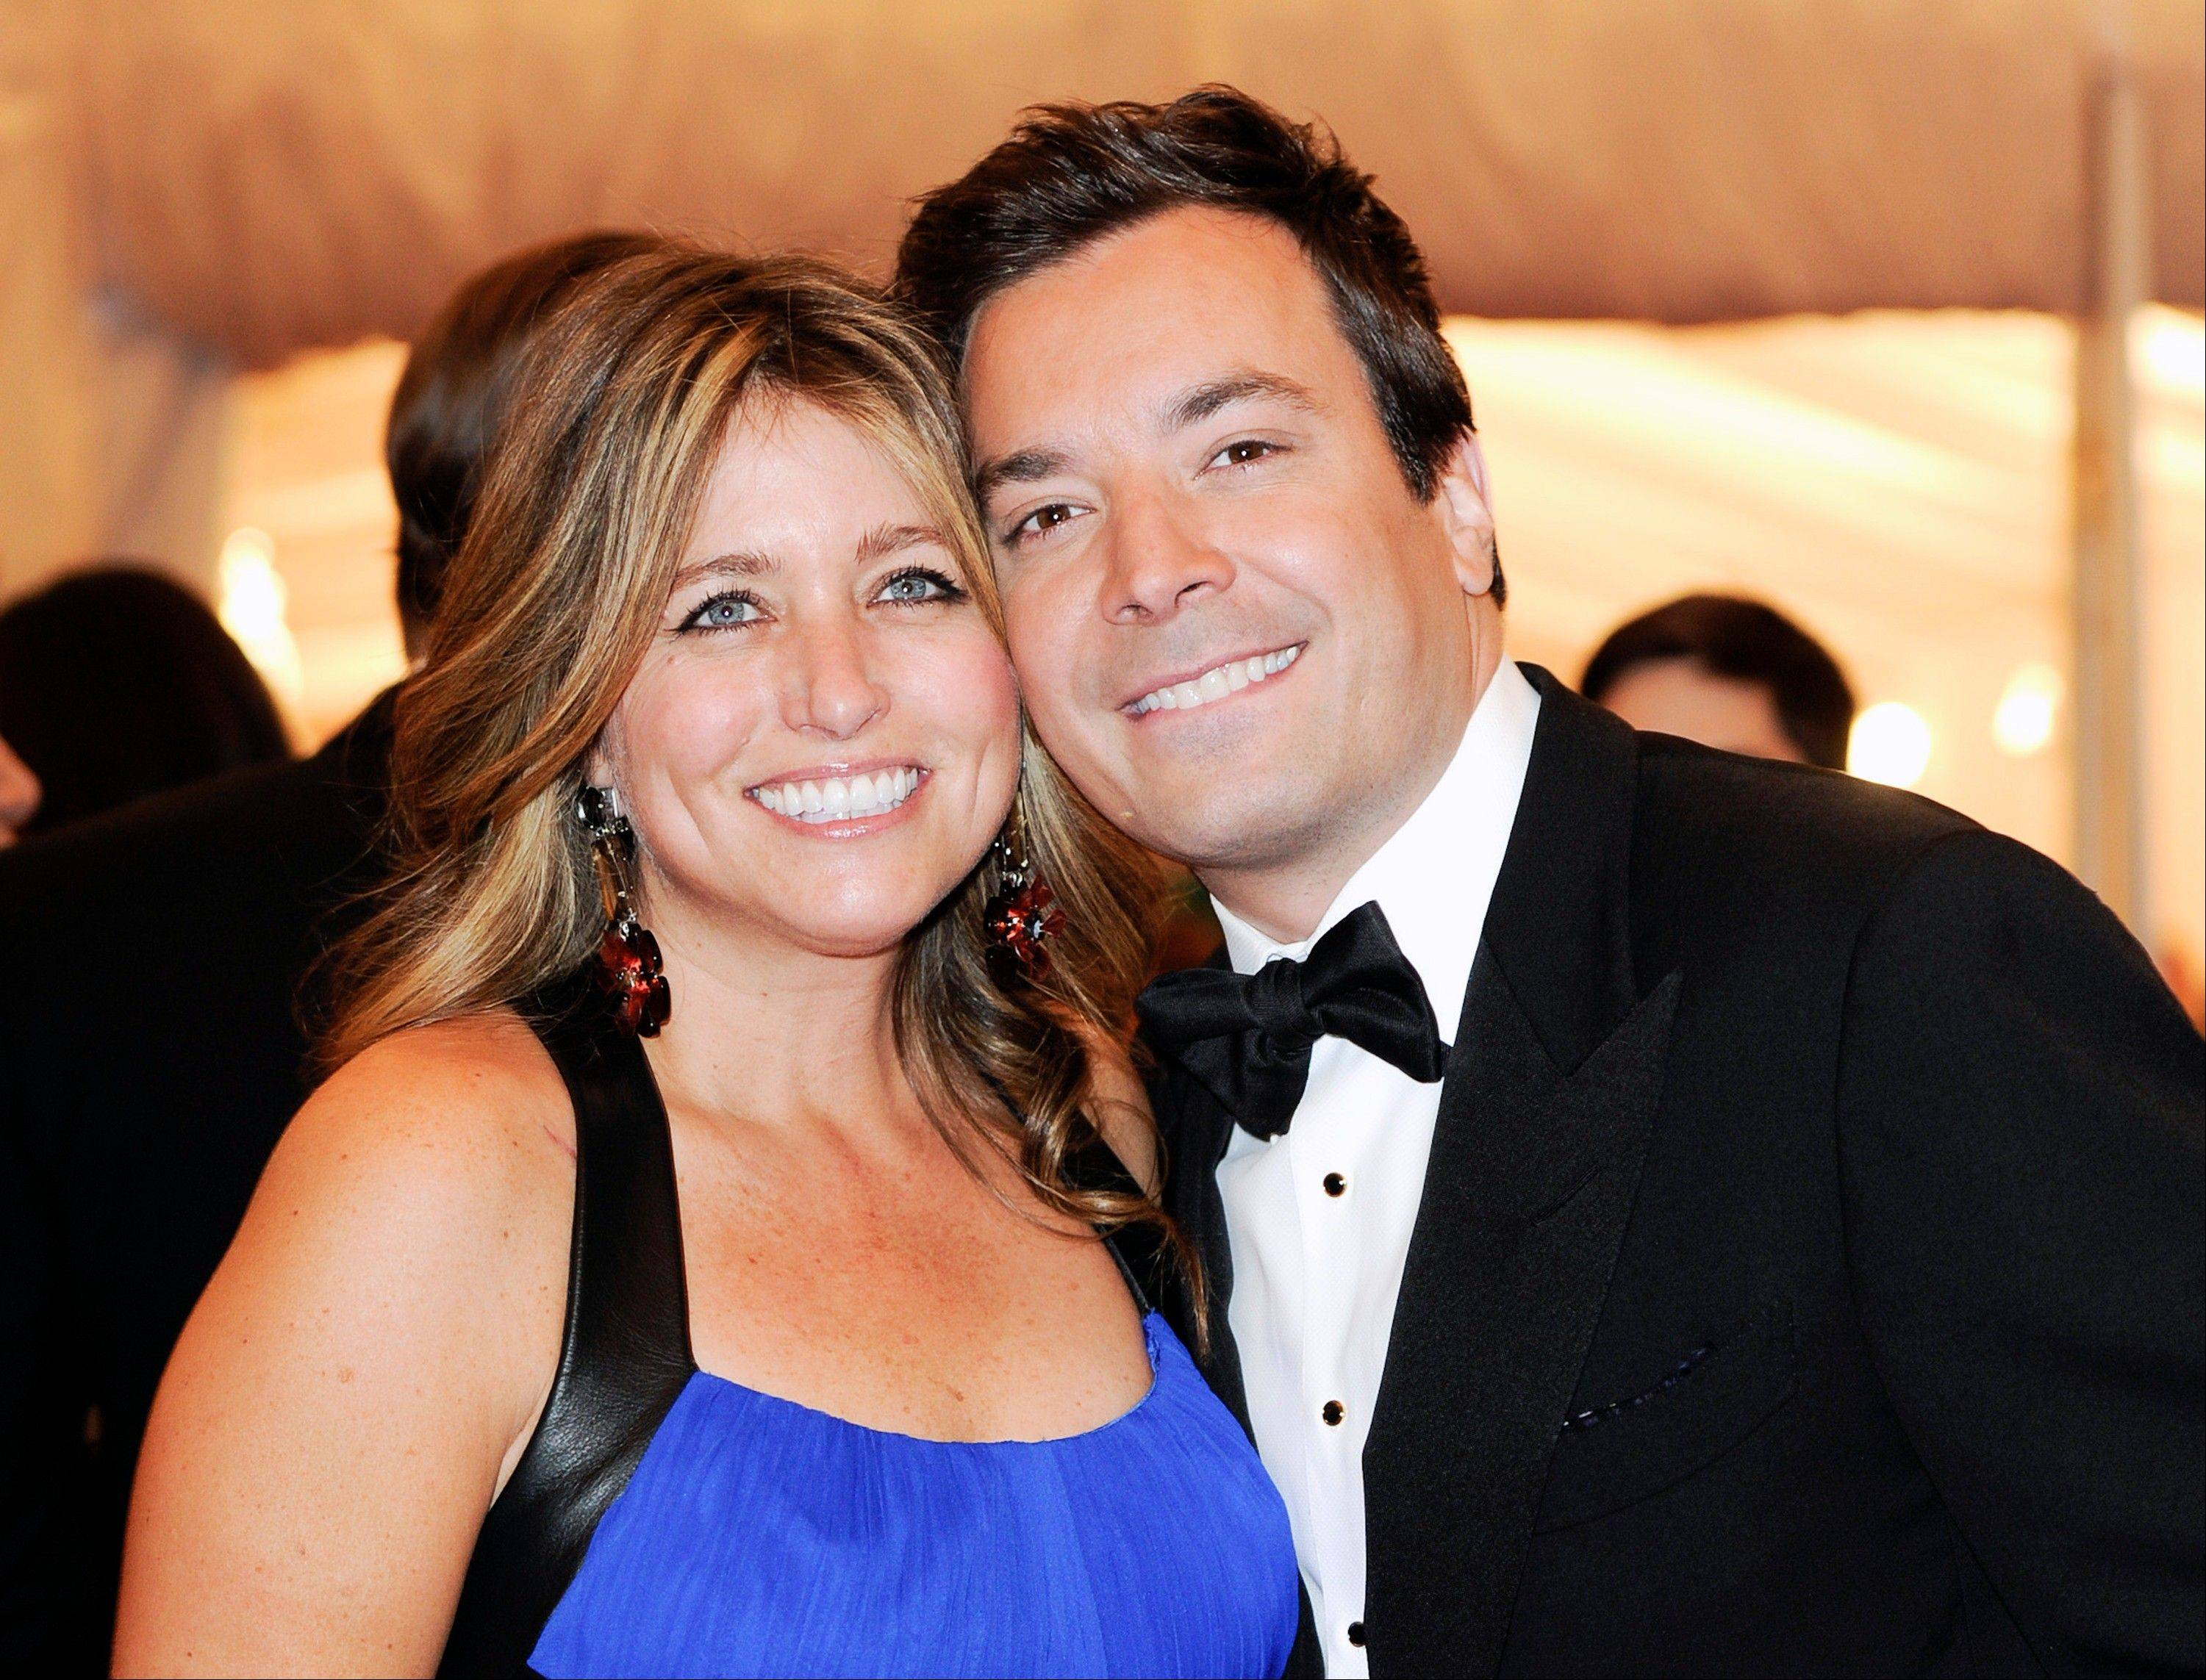 Jimmy Fallon says he and his wife Nancy Juvonen had their baby daughter with the help of a surrogate.